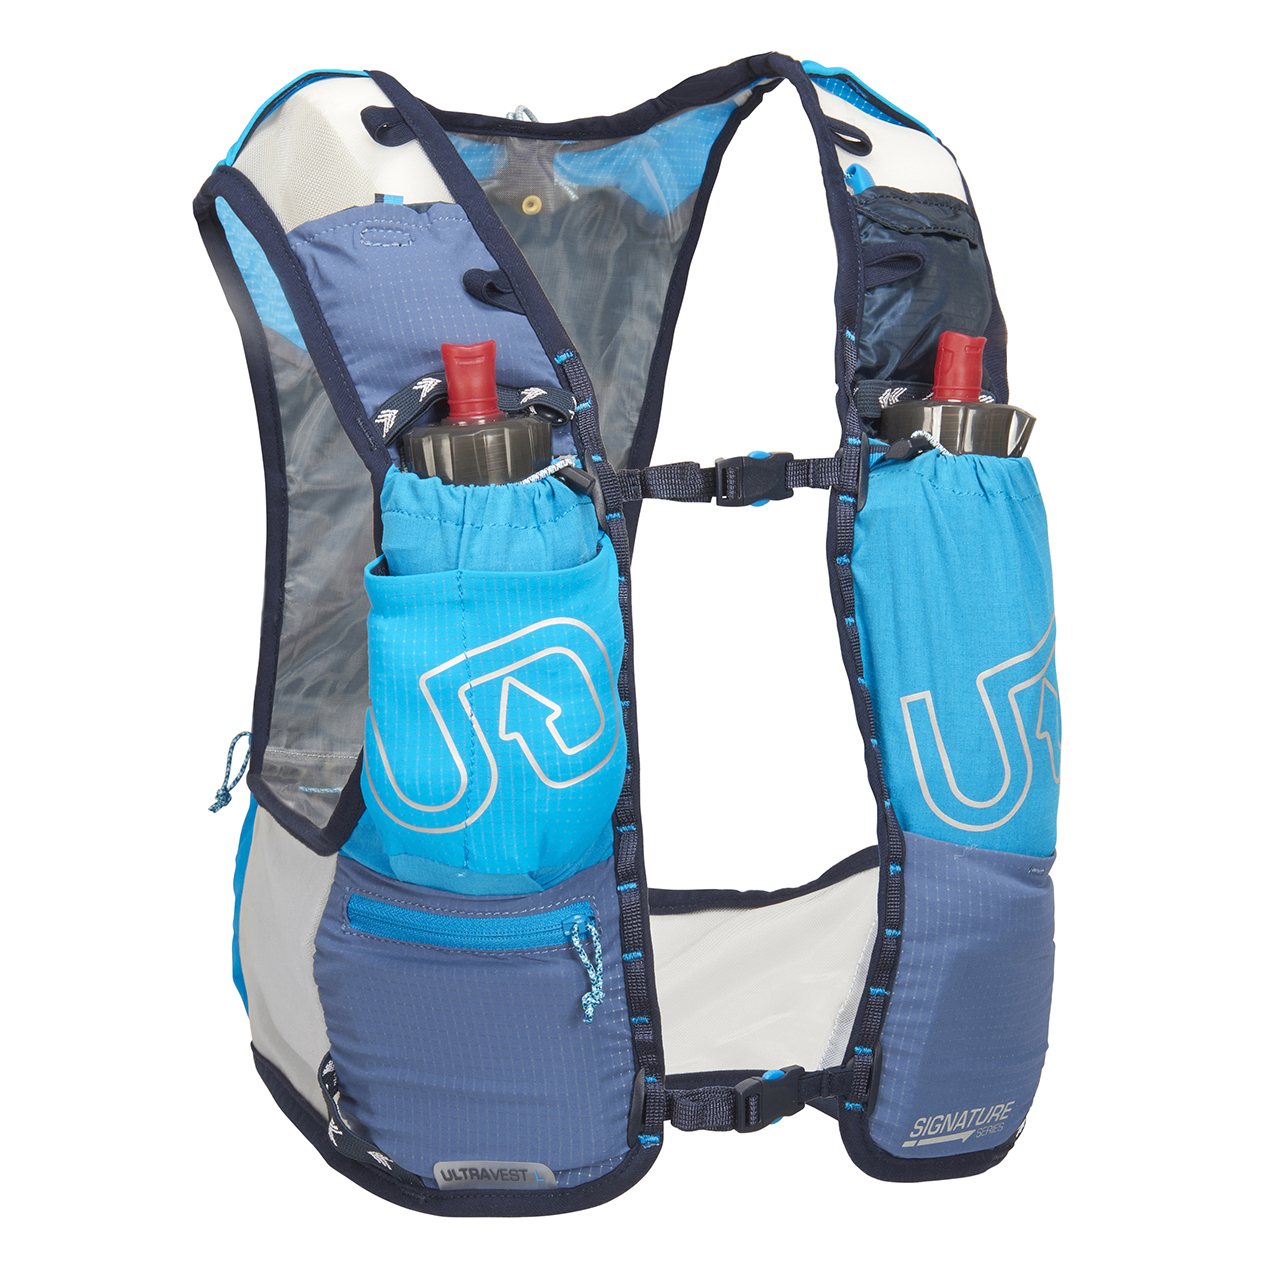 Ultimate Direction Ultra Vest 4.0 image